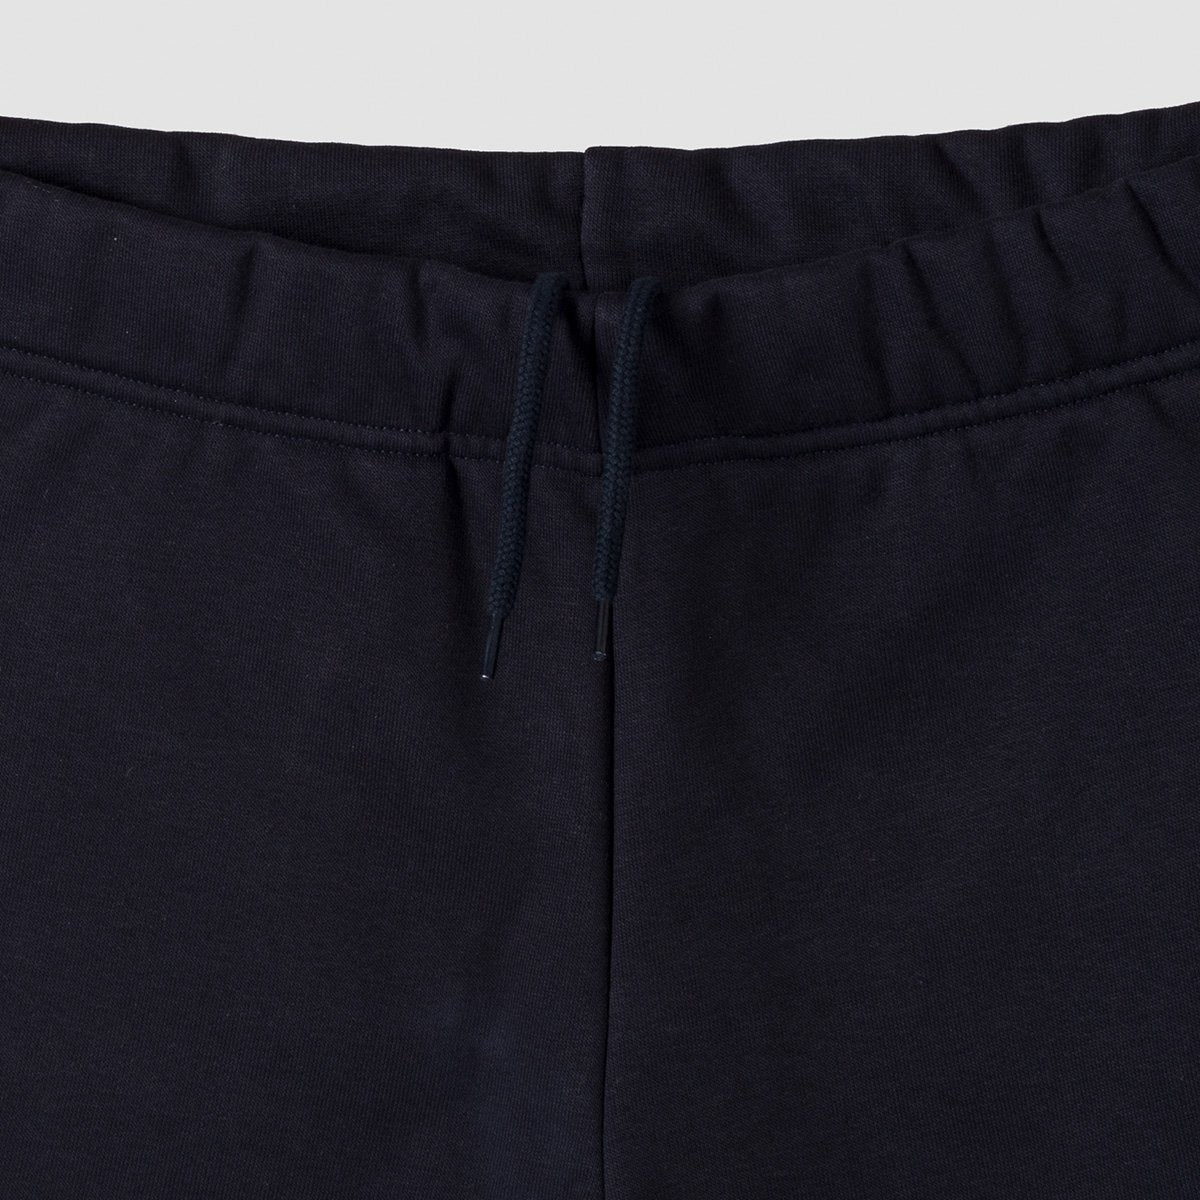 Carhartt WIP Chase Sweat Shorts Dark Navy/Gold - Clothing